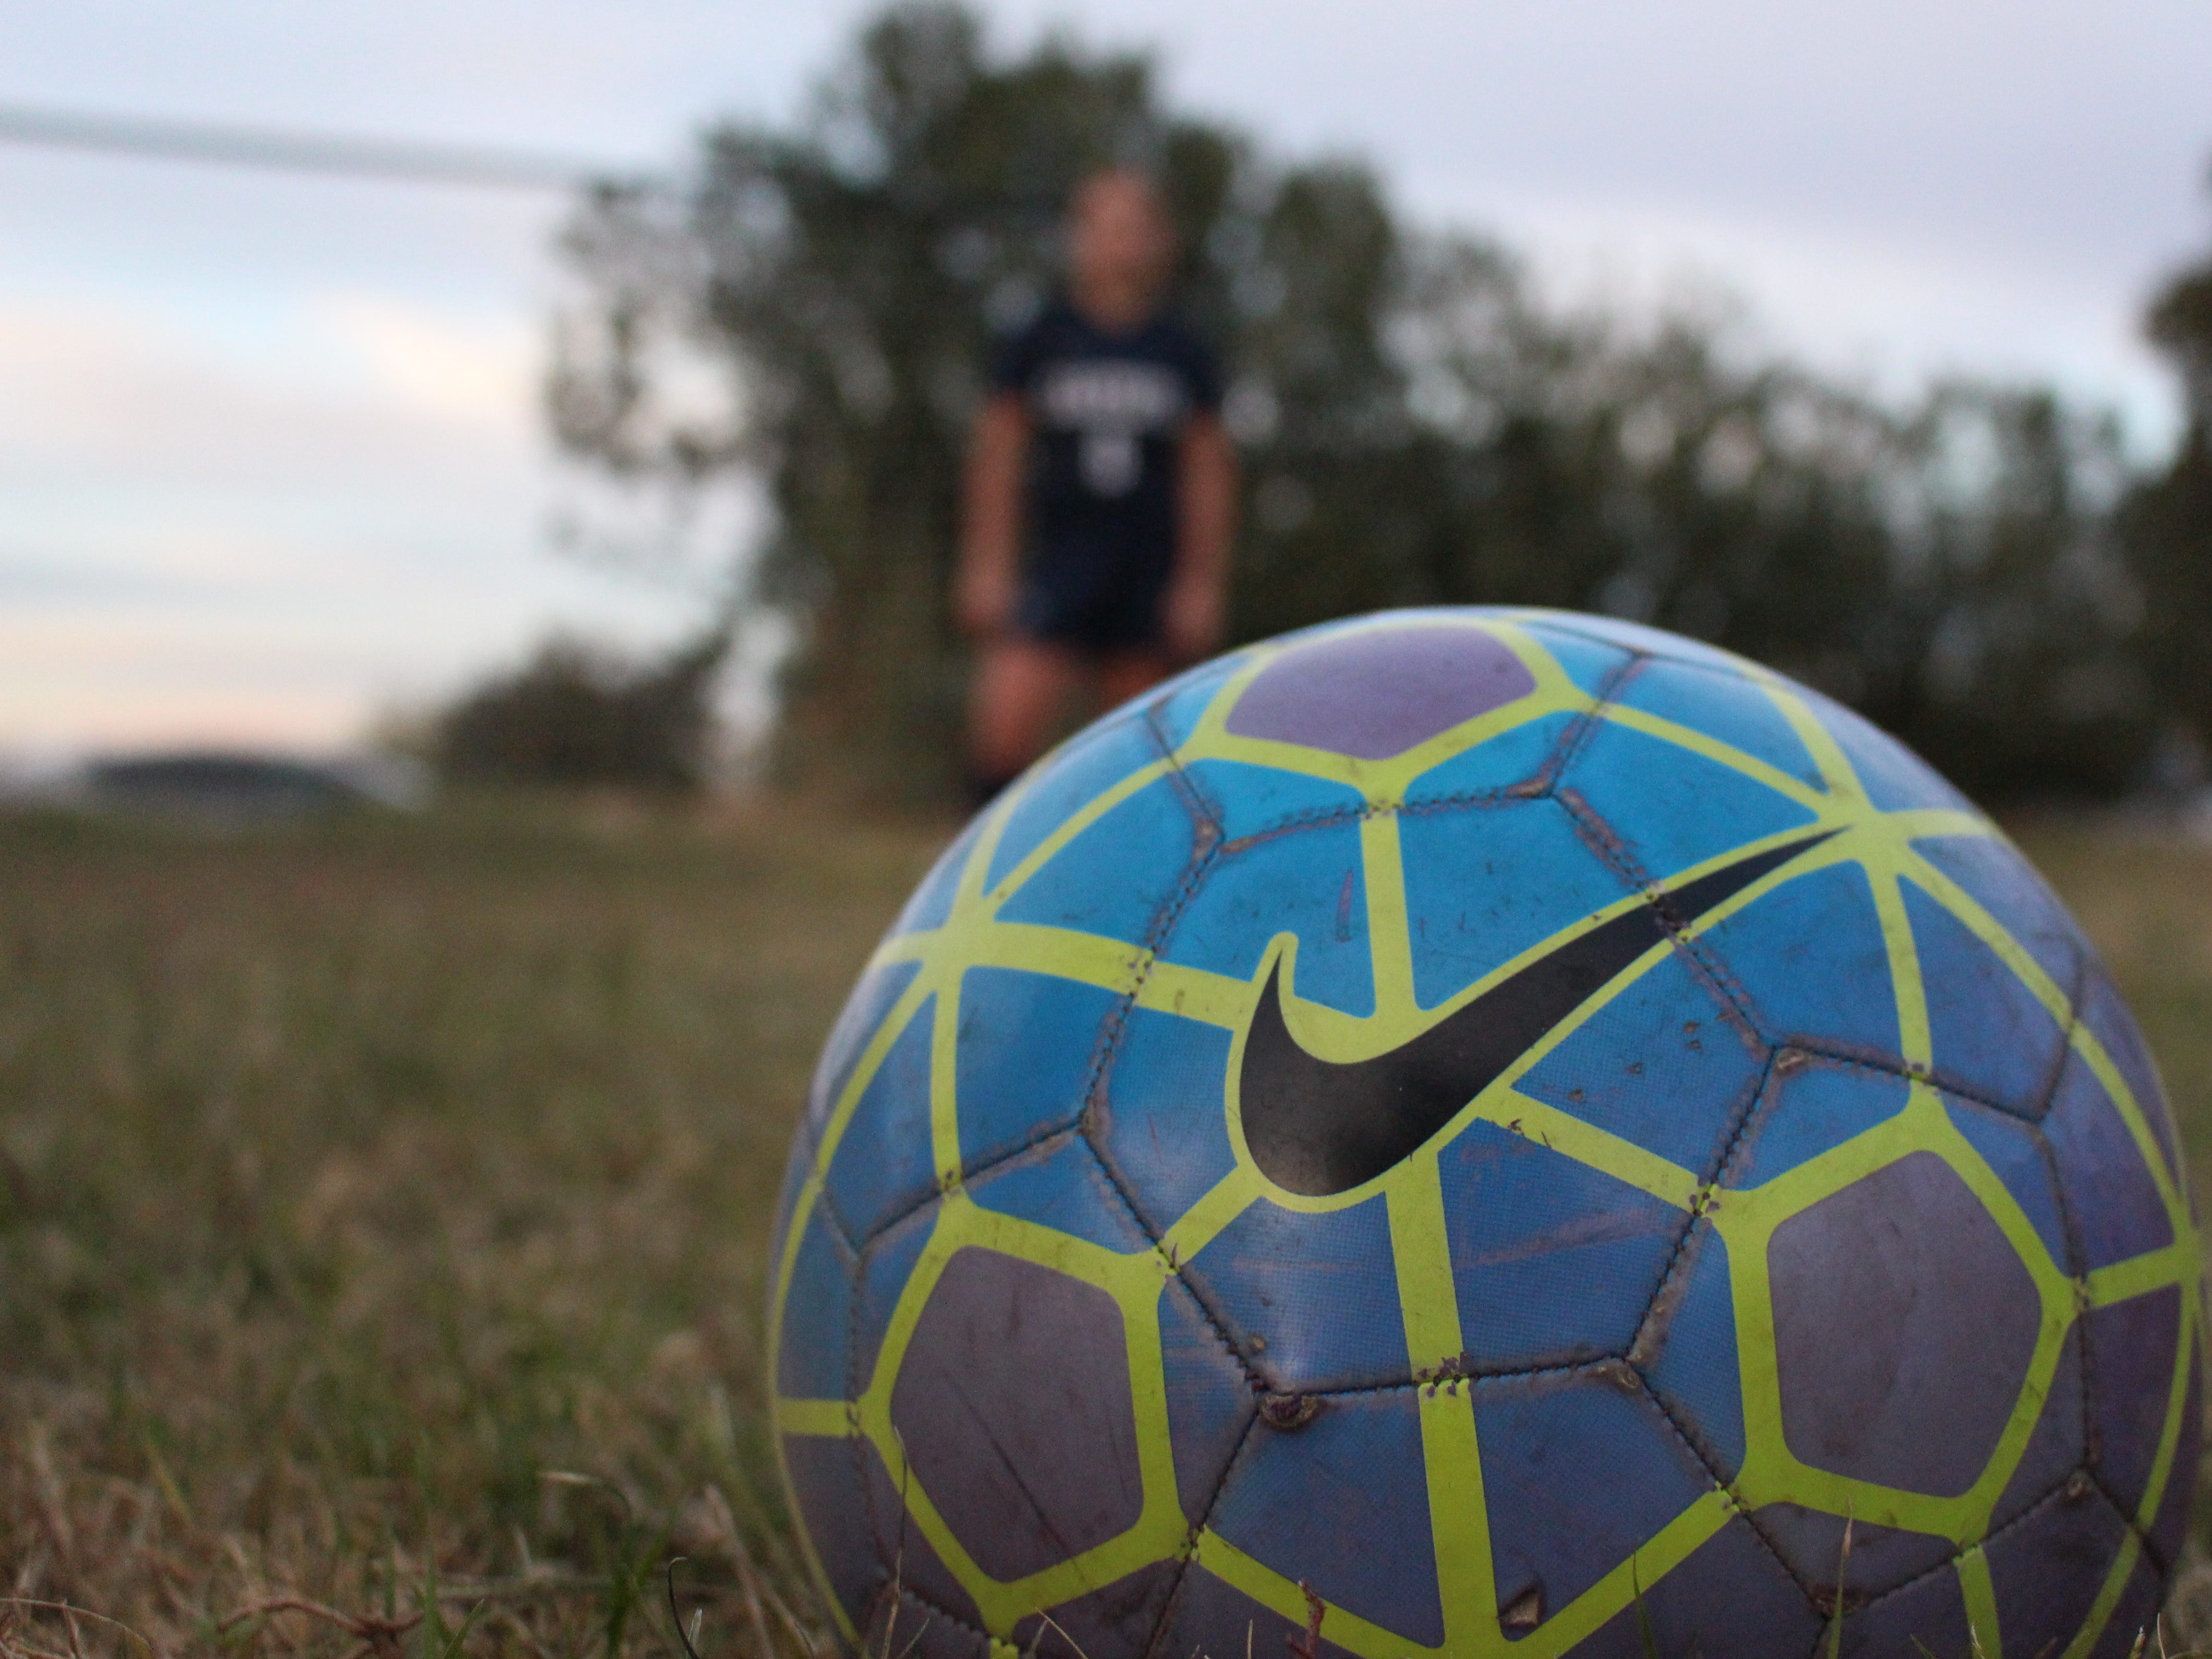 Casteel's Scarlett Frohardt stares at the soccer ball on Wednesday in Queen Creek on Nov. 14, 2018.